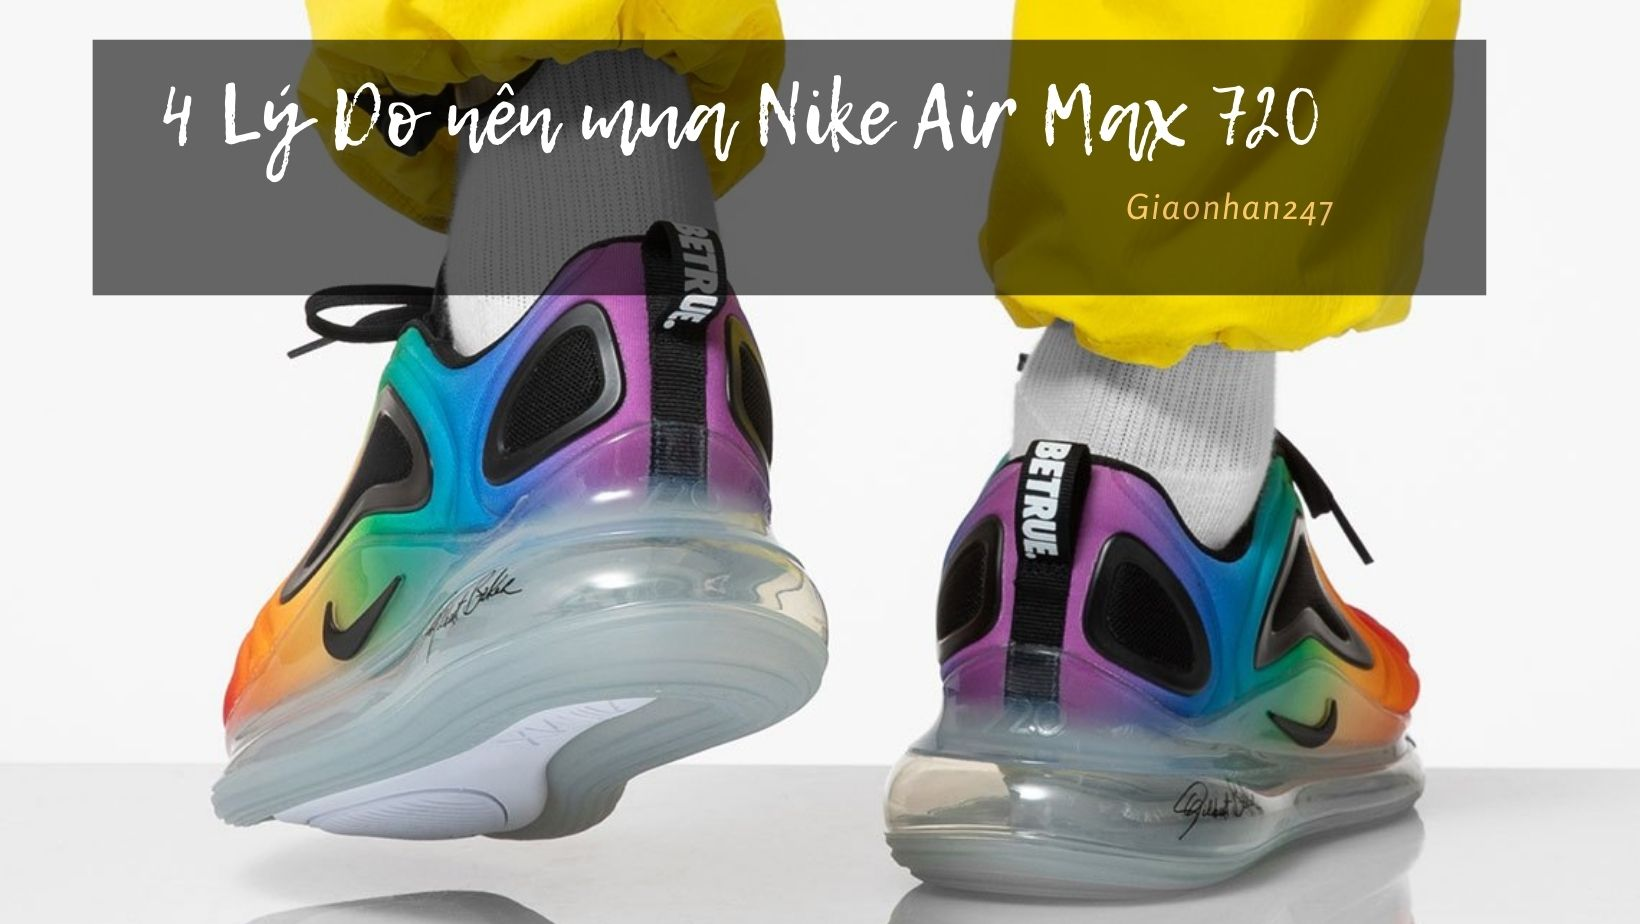 ly-do-mua-nike-air-max-720